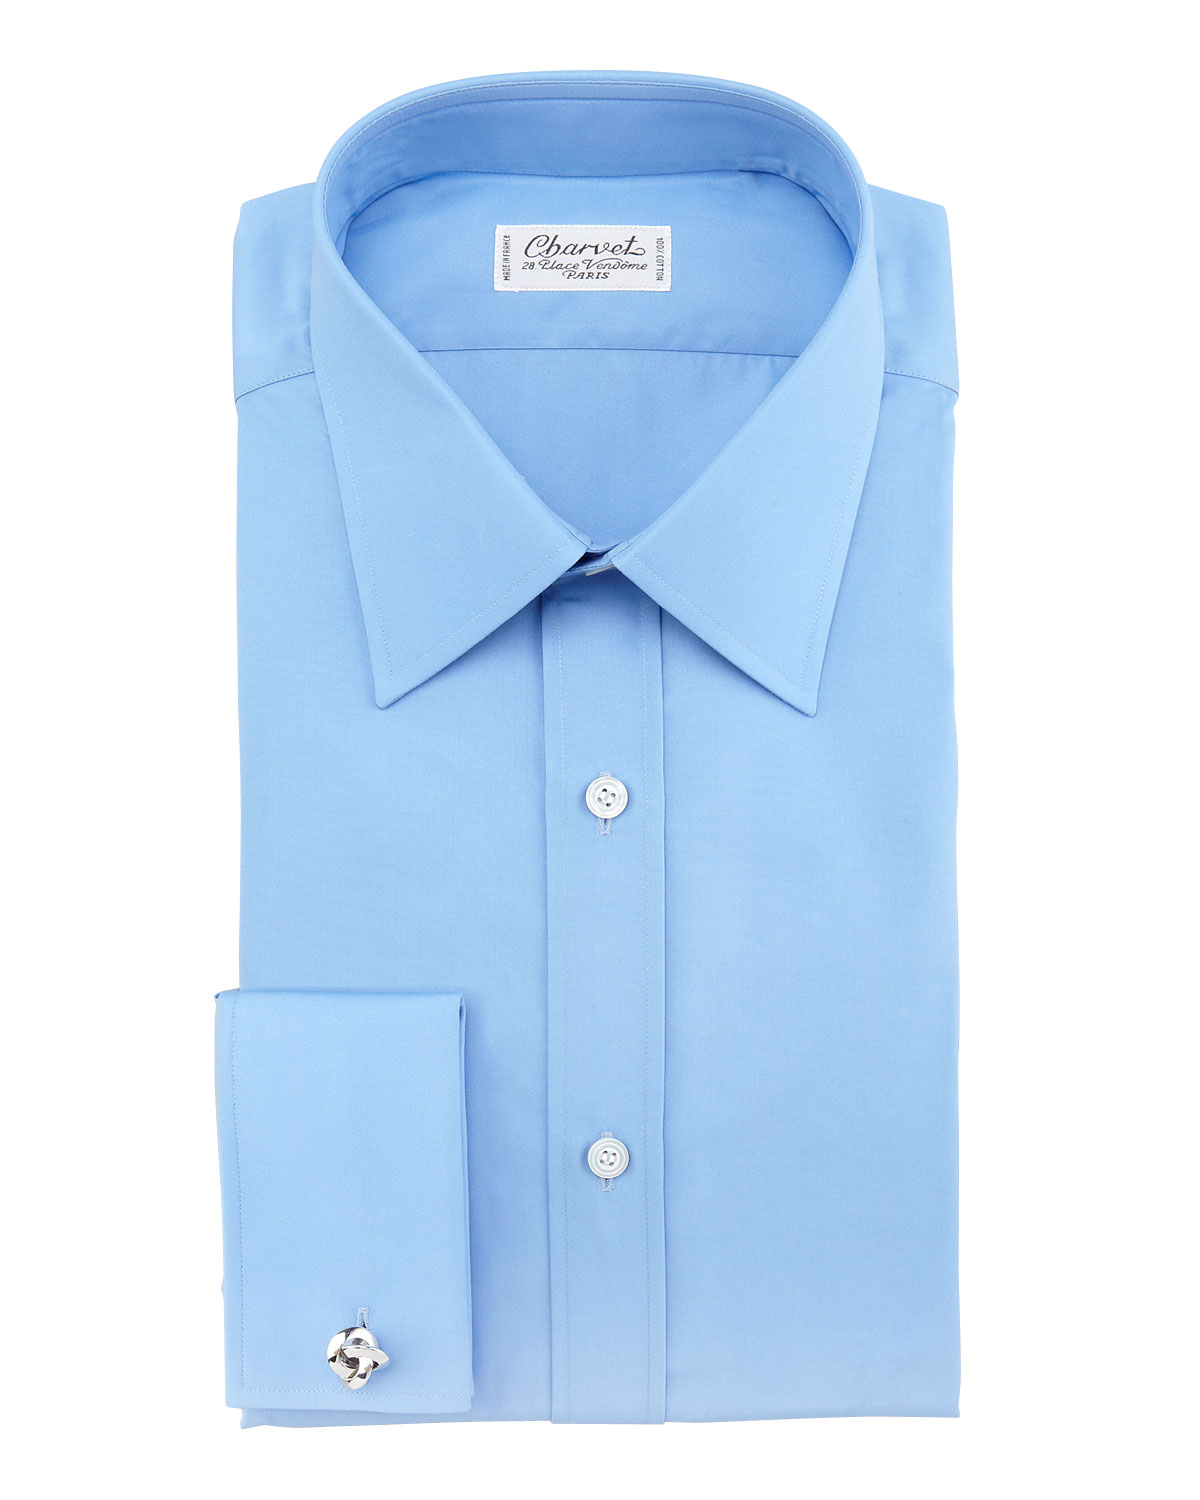 Charvet Poplin French Cuff Shirt In Blue For Men Lyst